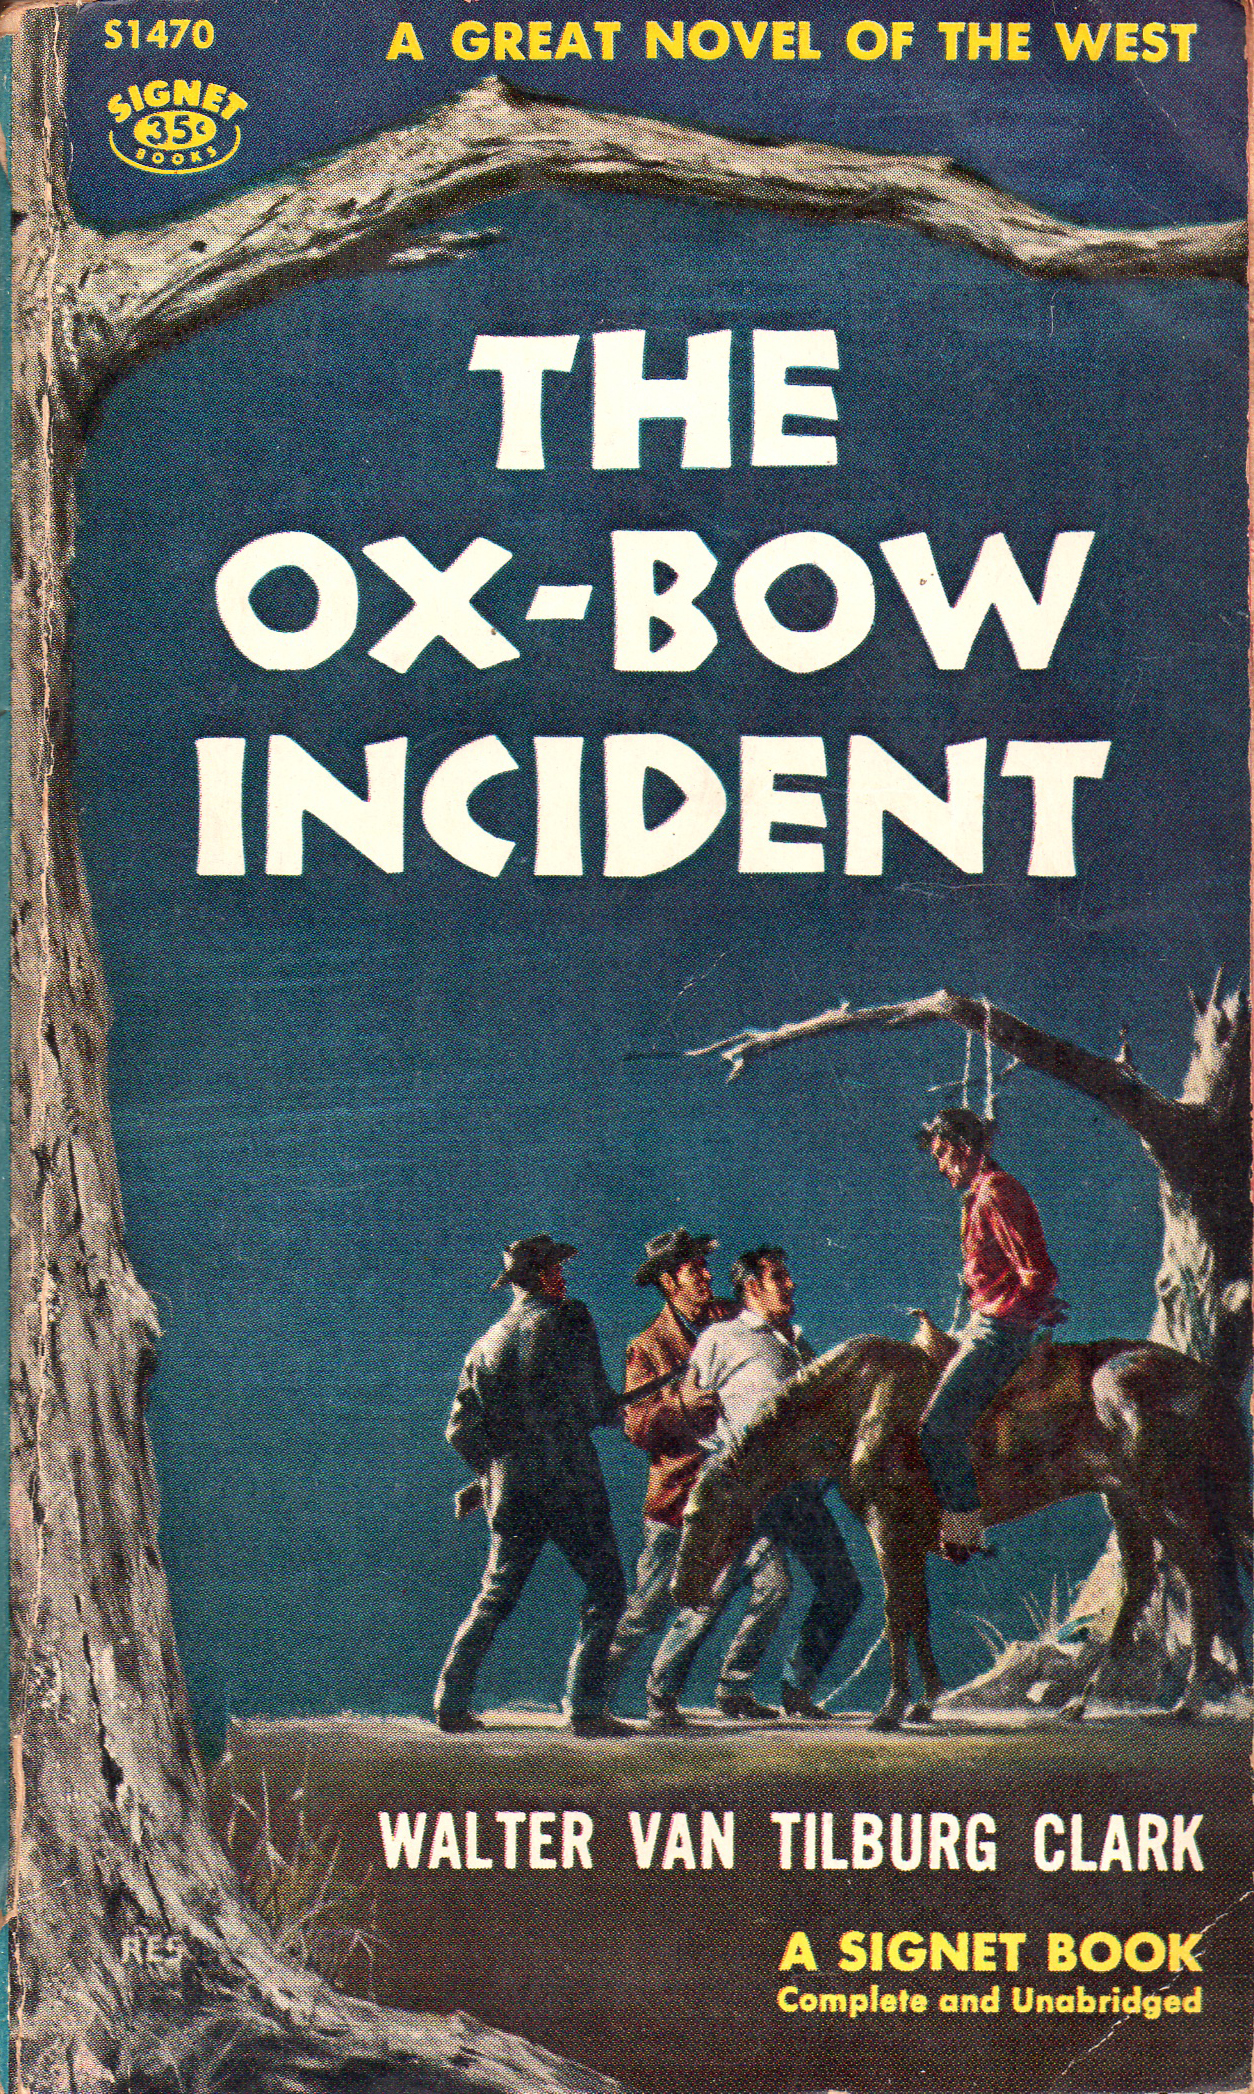 Novel cover of The Ox-Bow Incident by Walter Van Tilburg Clark.